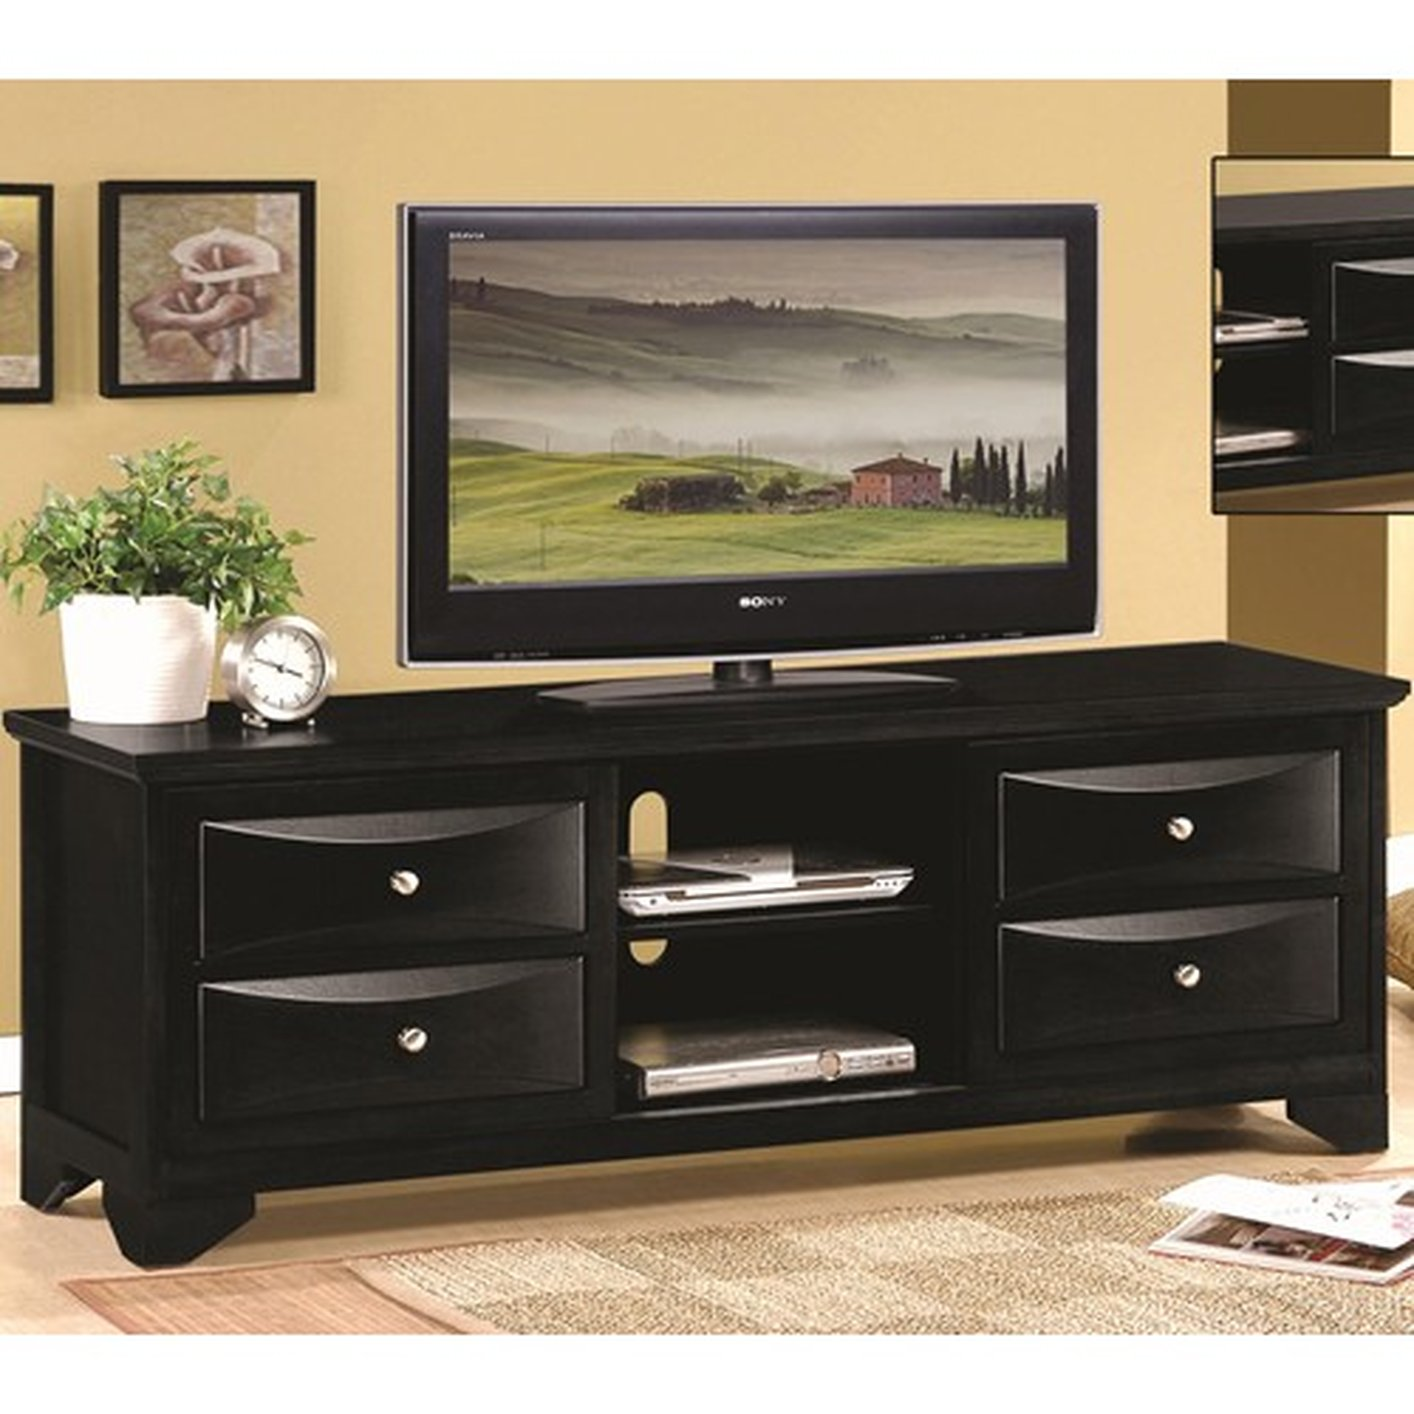 Black Wood Tv Stand Steal A Sofa Furniture Outlet Los Angeles Ca